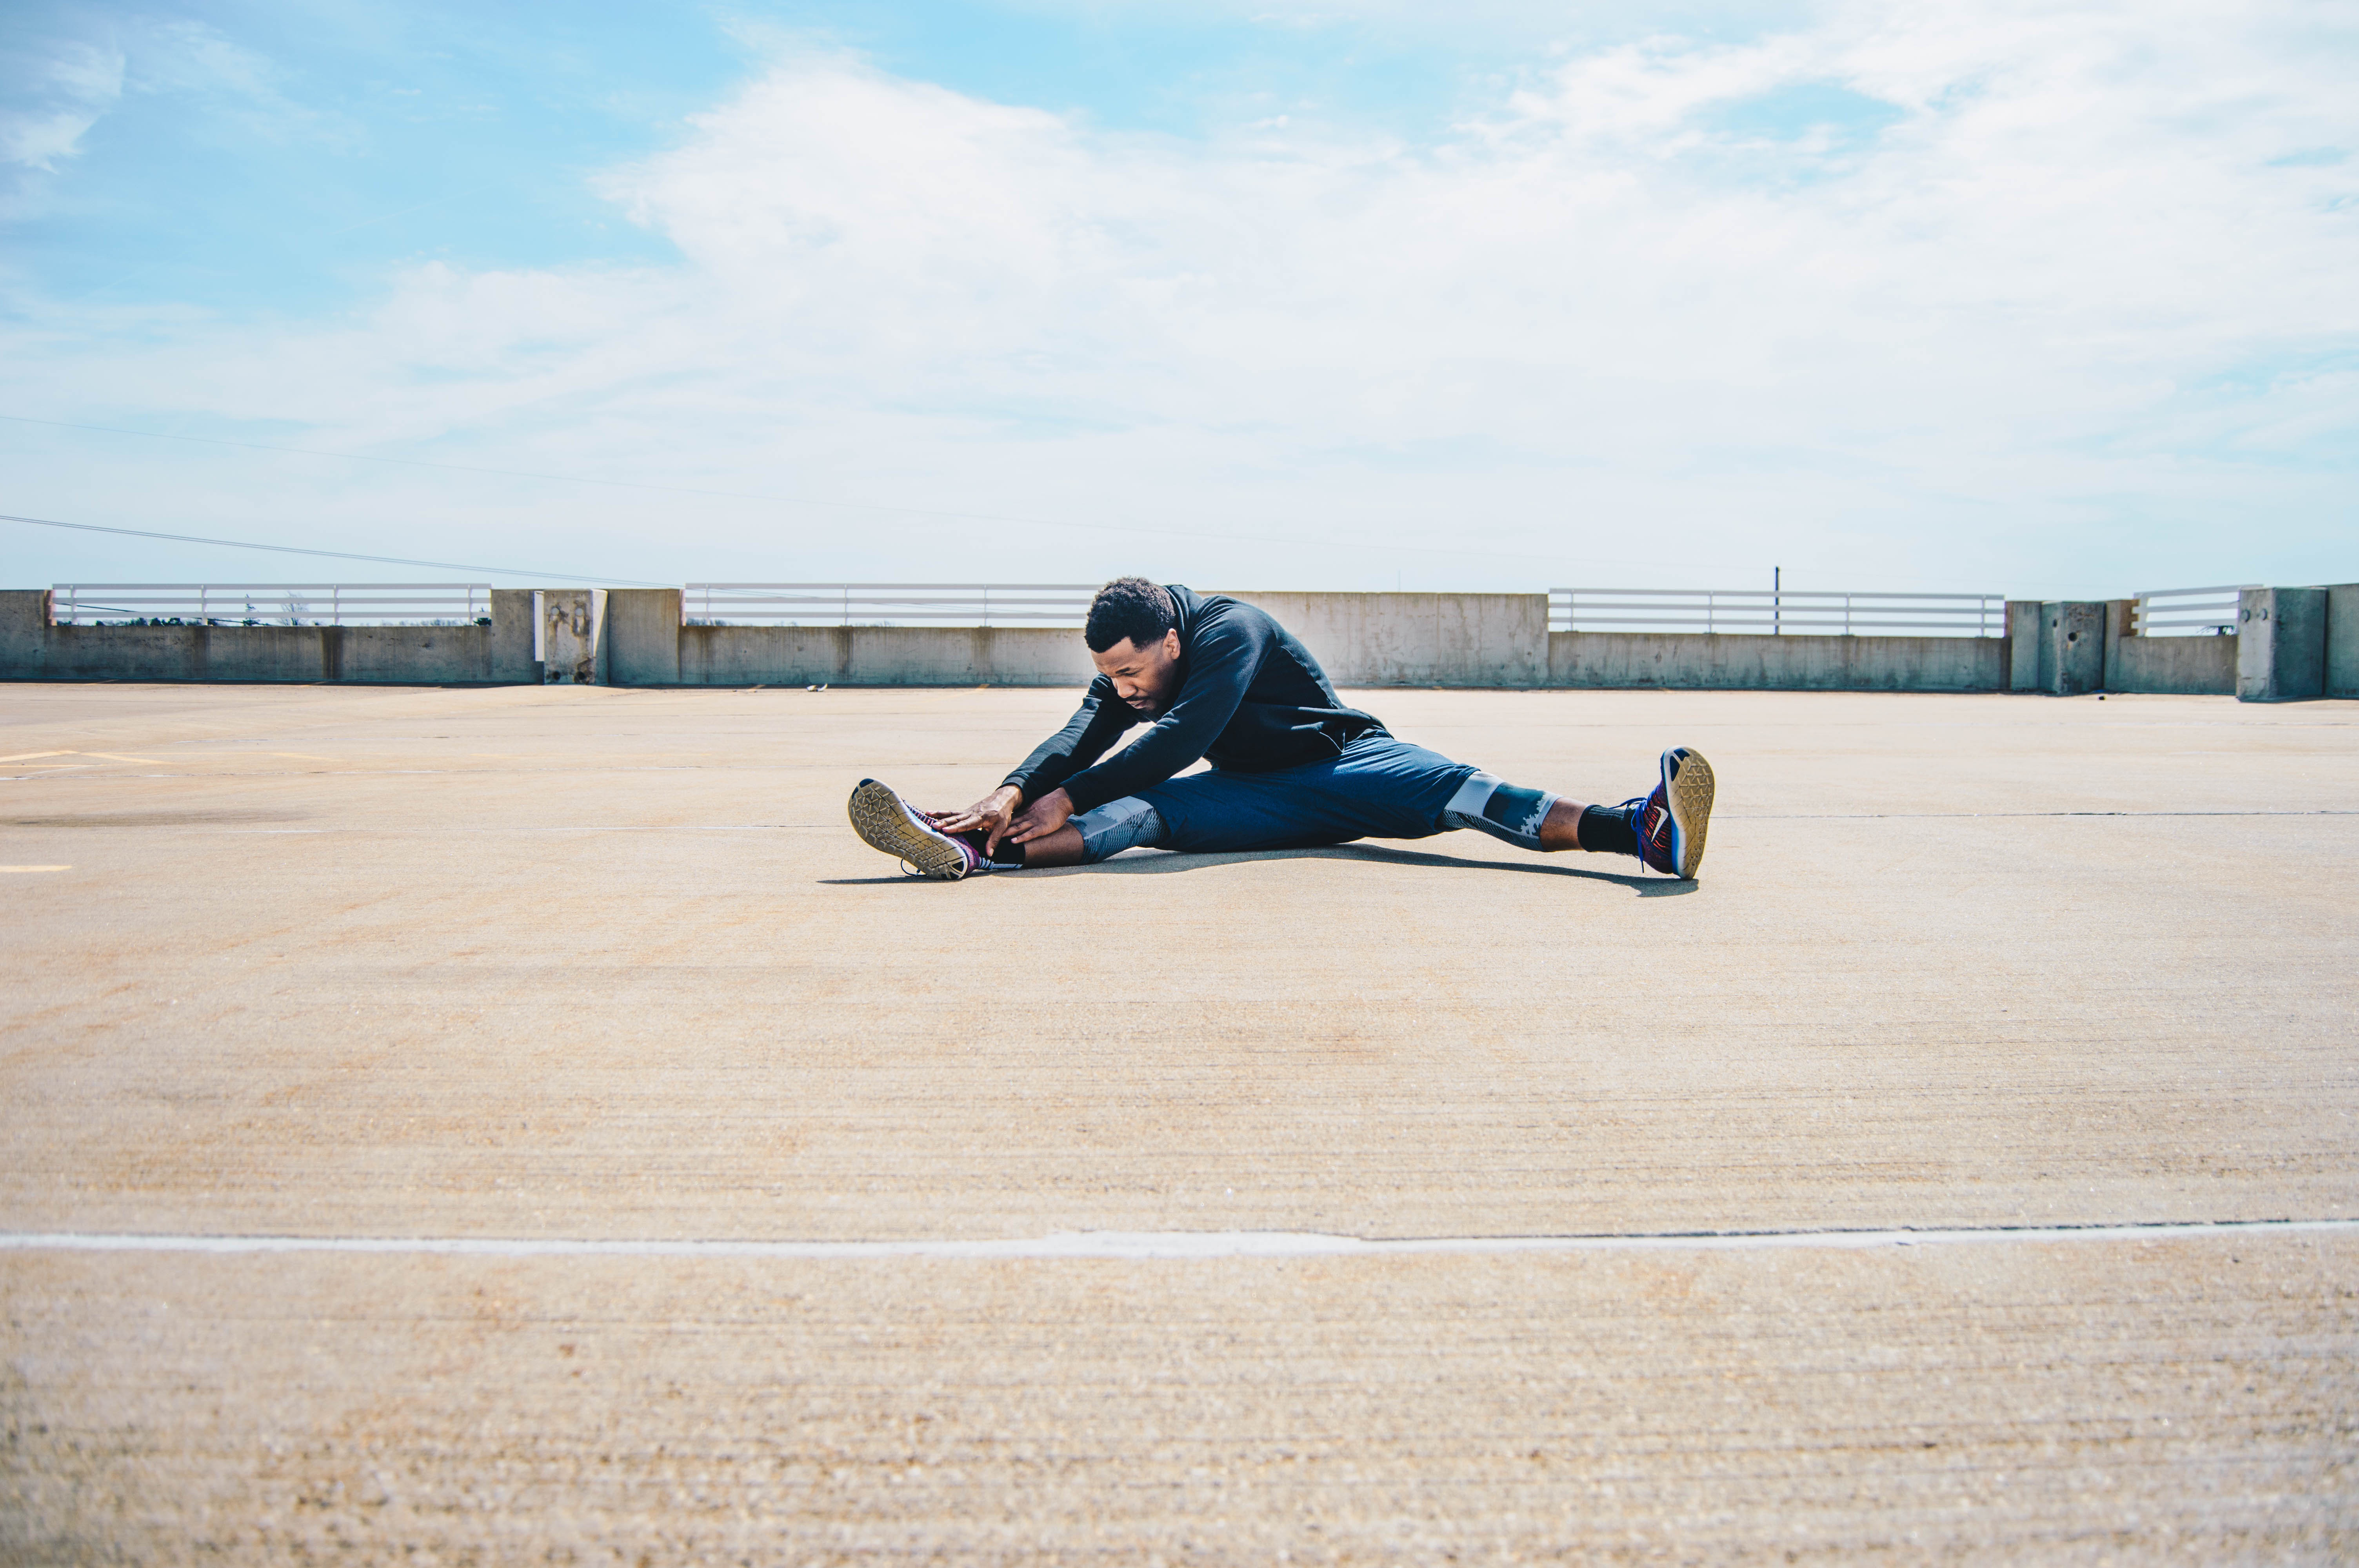 Stretching: Should You Do Static or Dynamic Stretches For Longevity?